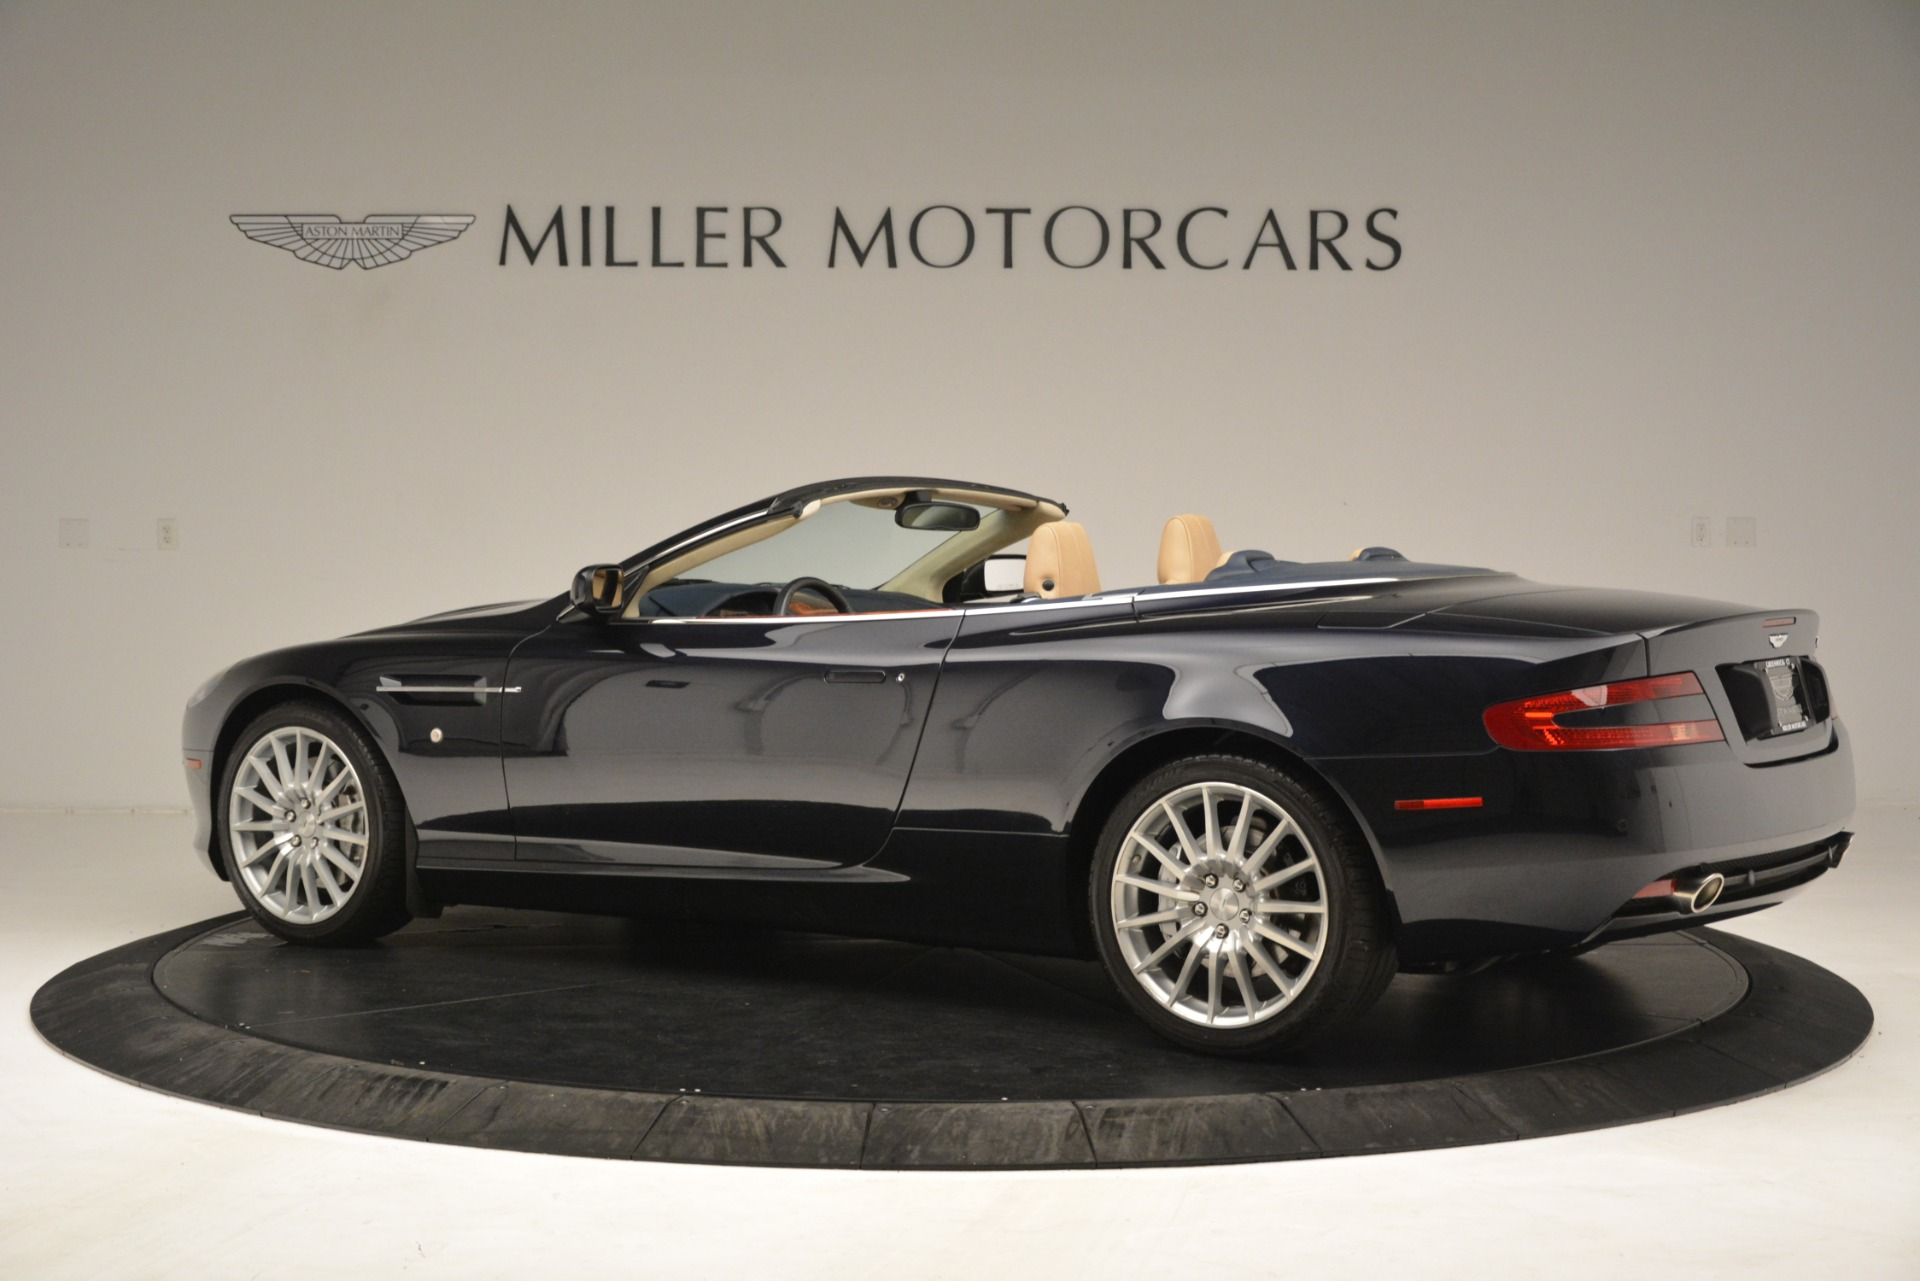 Used 2007 Aston Martin DB9 Convertible For Sale In Westport, CT 3291_p4